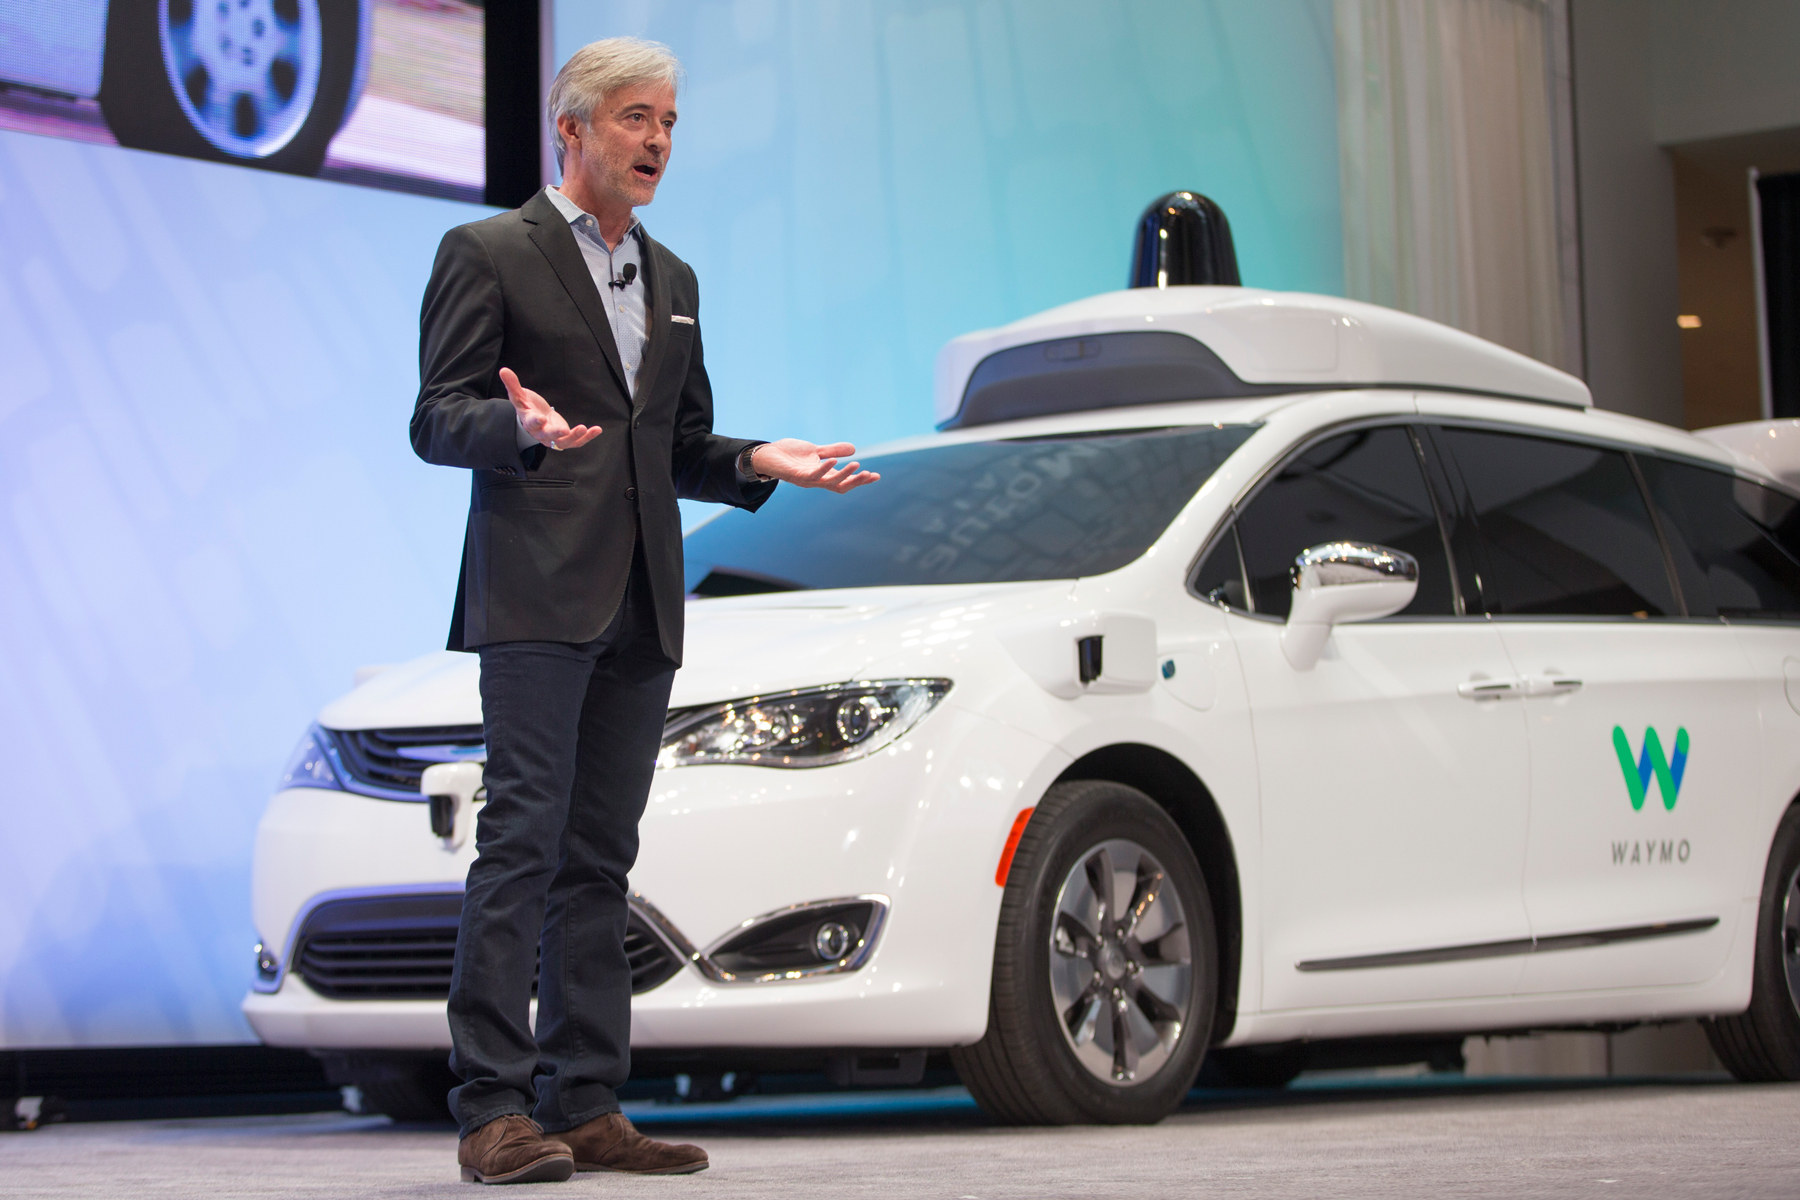 Waymo's CEO, John Krafcik, doesn't want his cars to be hacked.